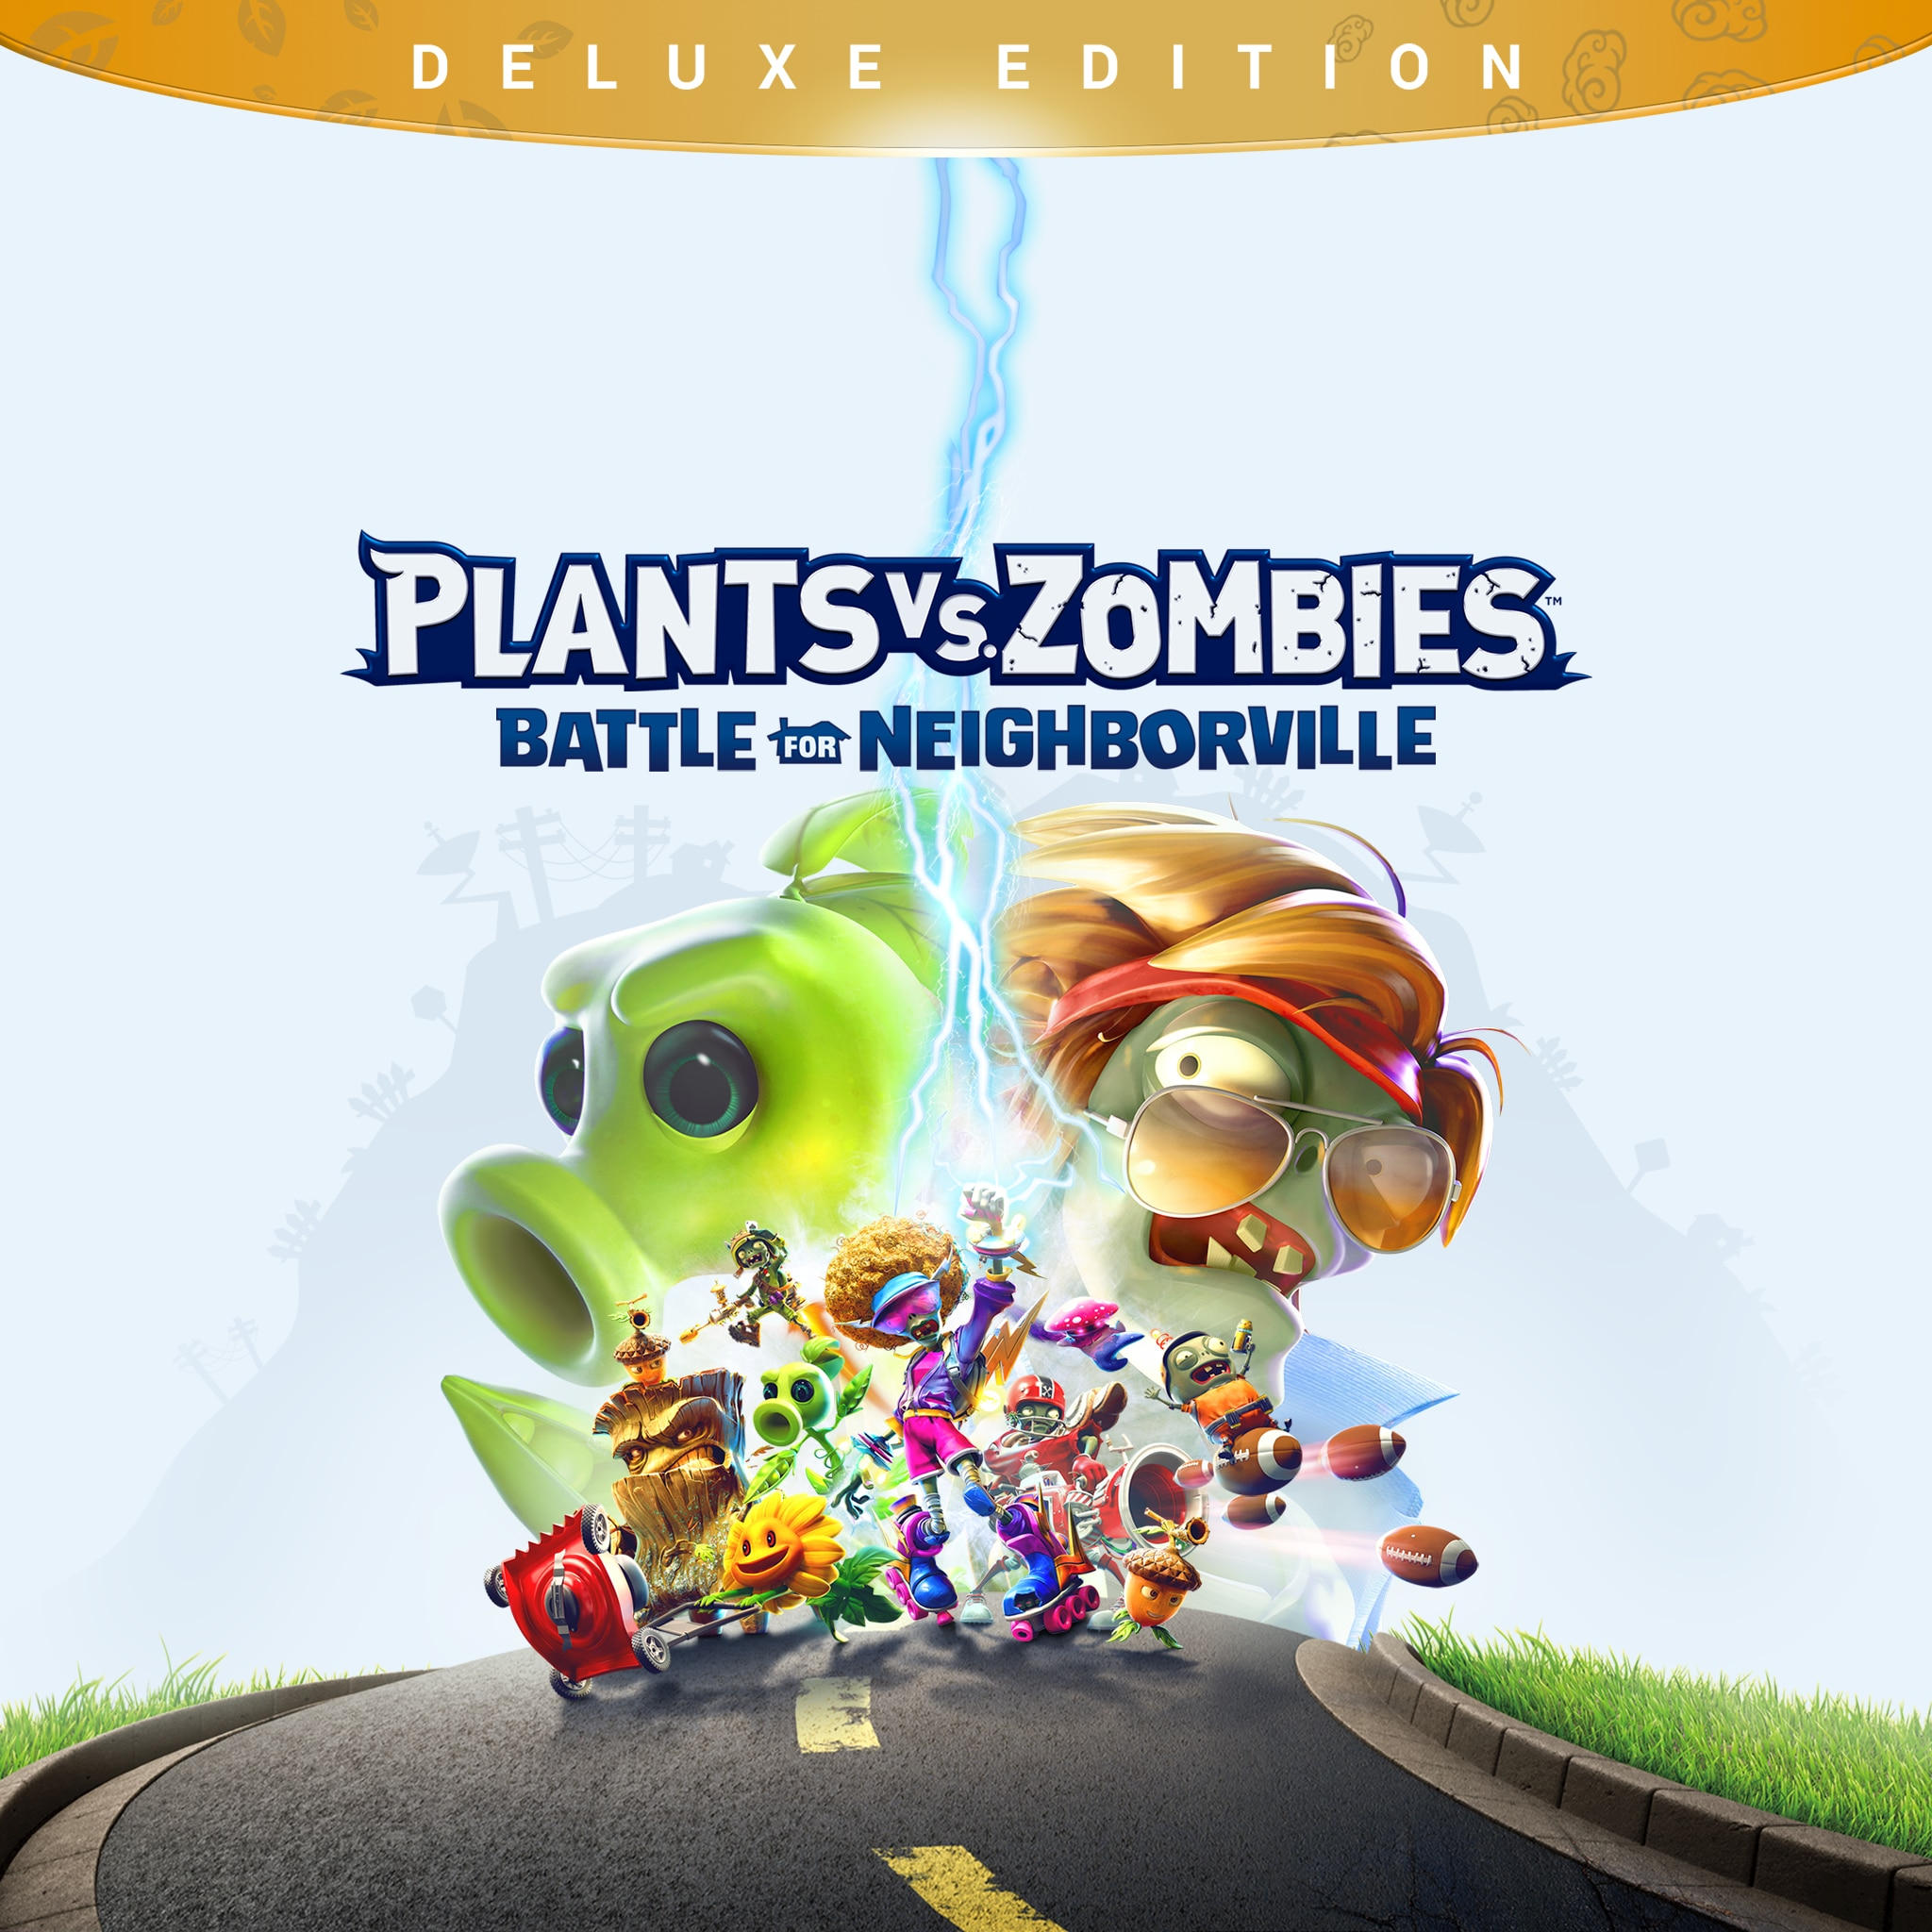 Plants vs. Zombies™: La Batalla de Neighborville edición delux